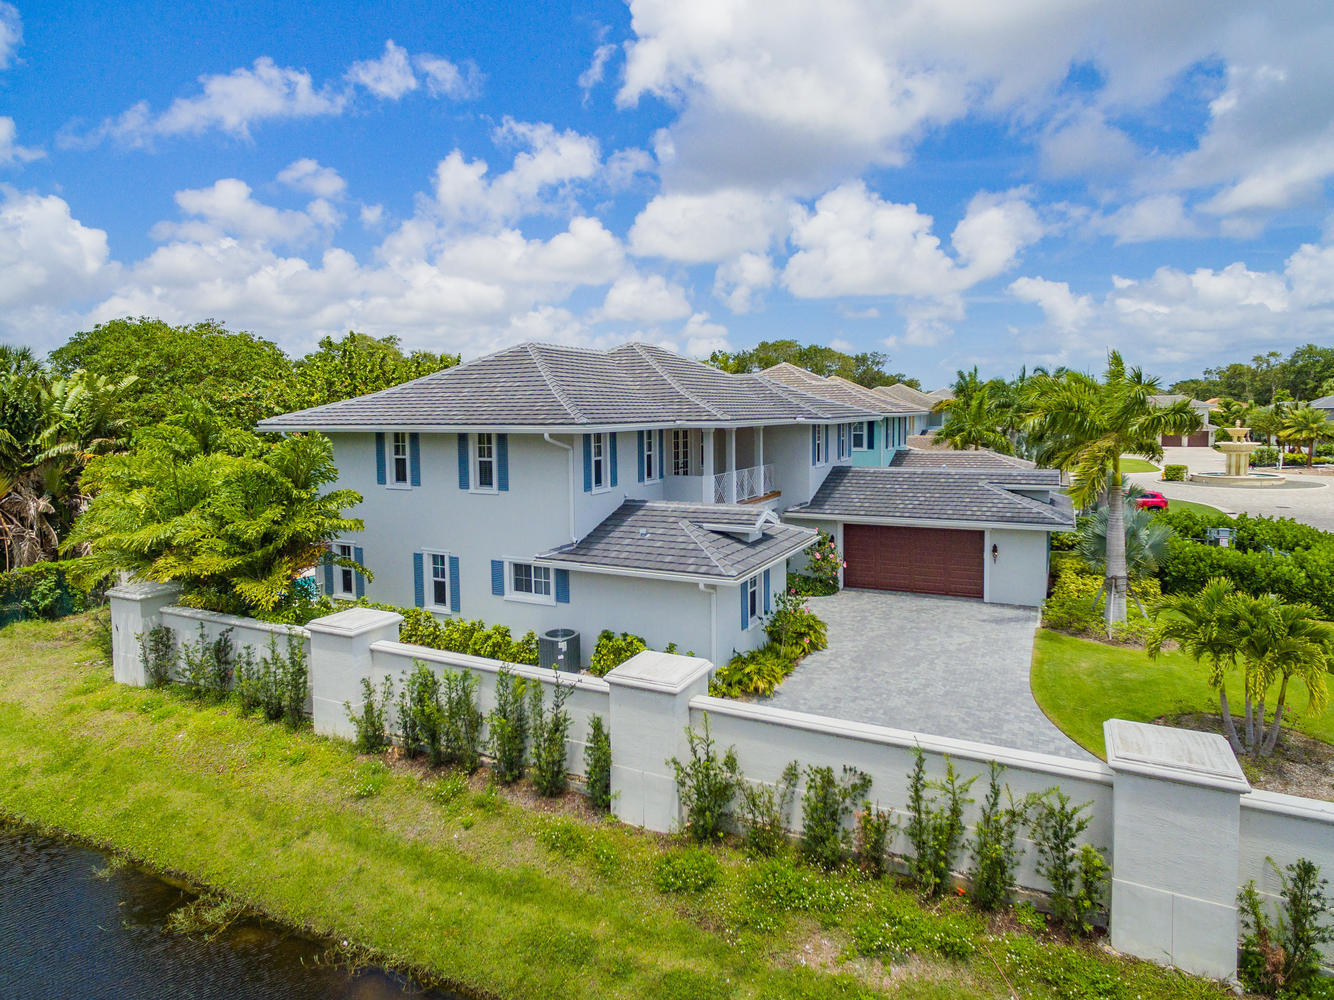 THE ESTATES OF NORTH PALM BEAC NORTH PALM BEACH REAL ESTATE